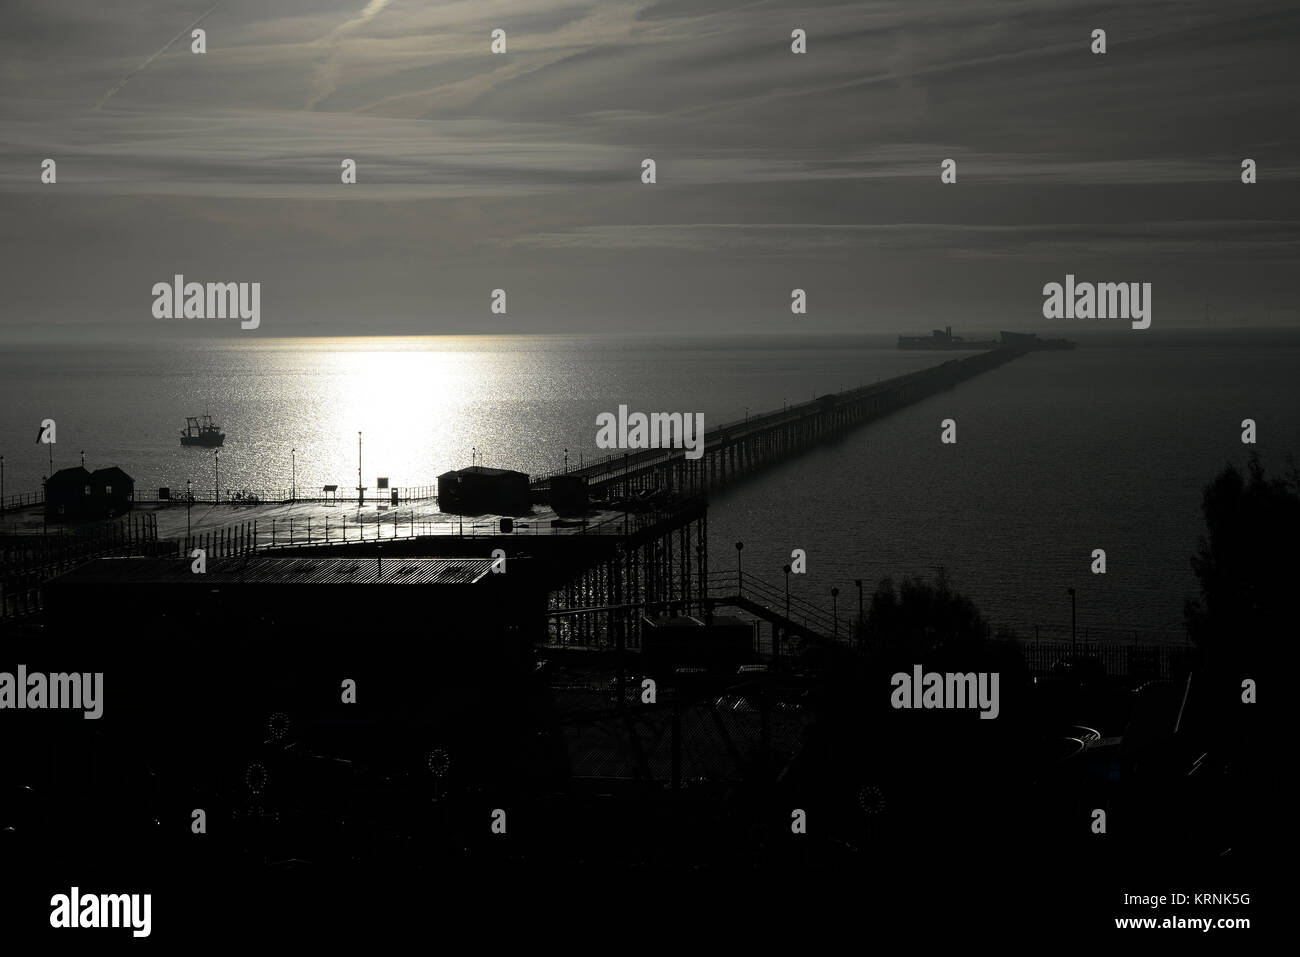 Southend Pier on a foggy misty day making a silhouette of the pier. Stretching out into the mist Thames Estuary, - Stock Image